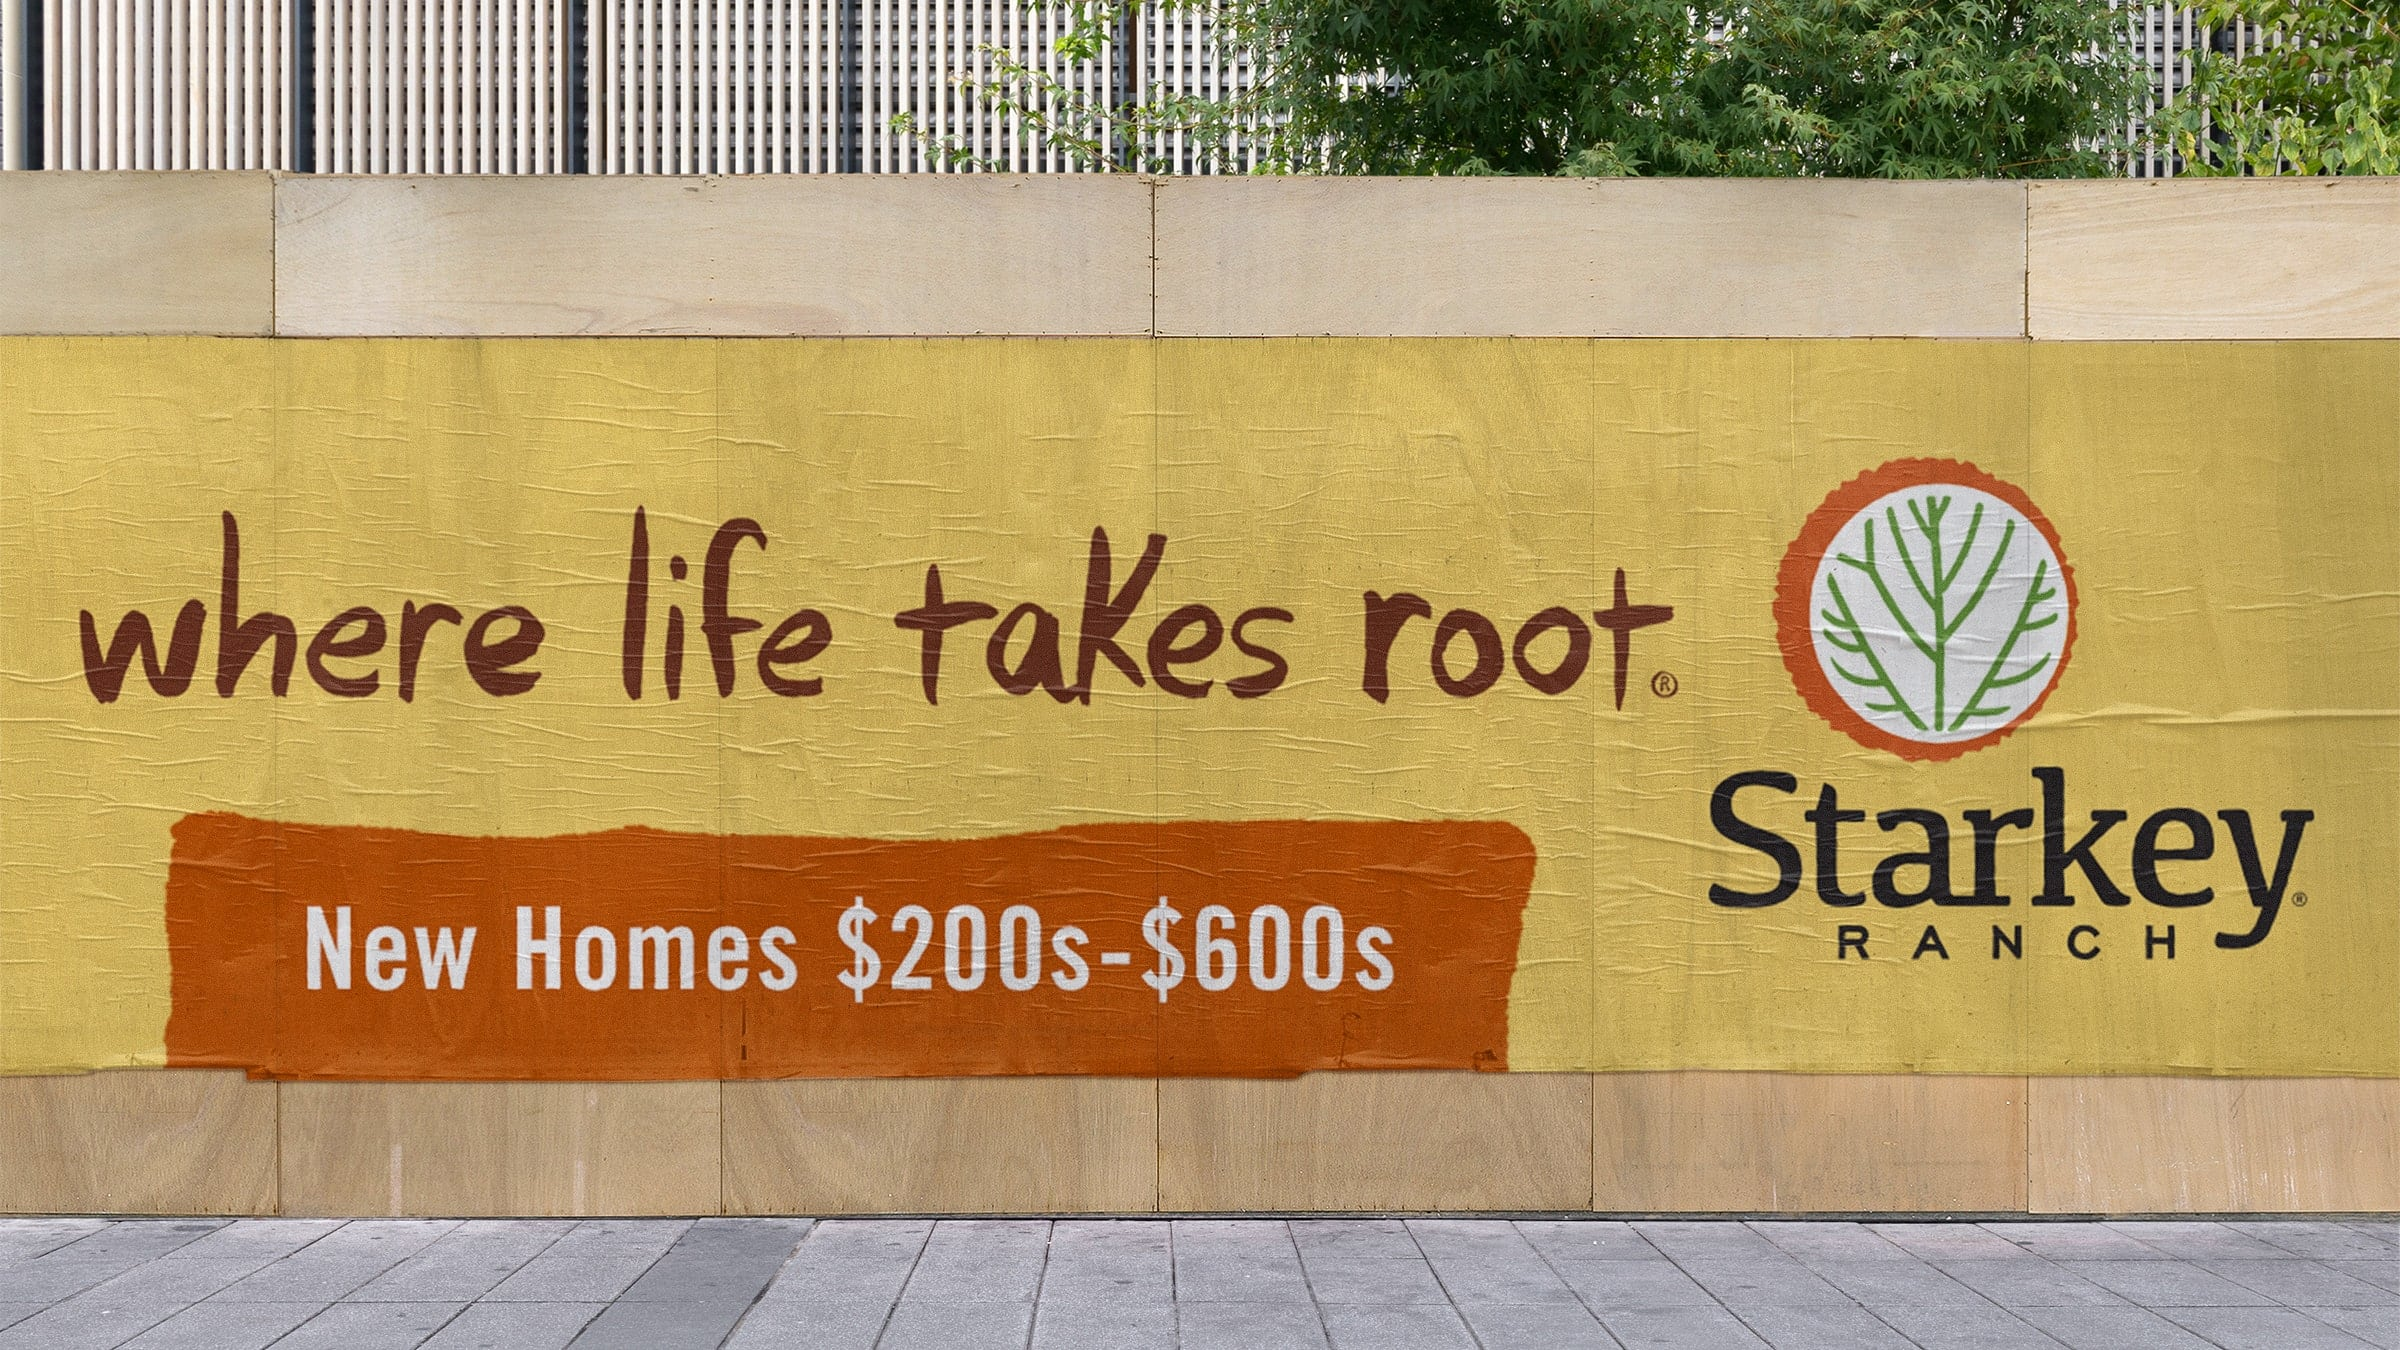 Starkey Ranch billboard - Where Life Takes Root